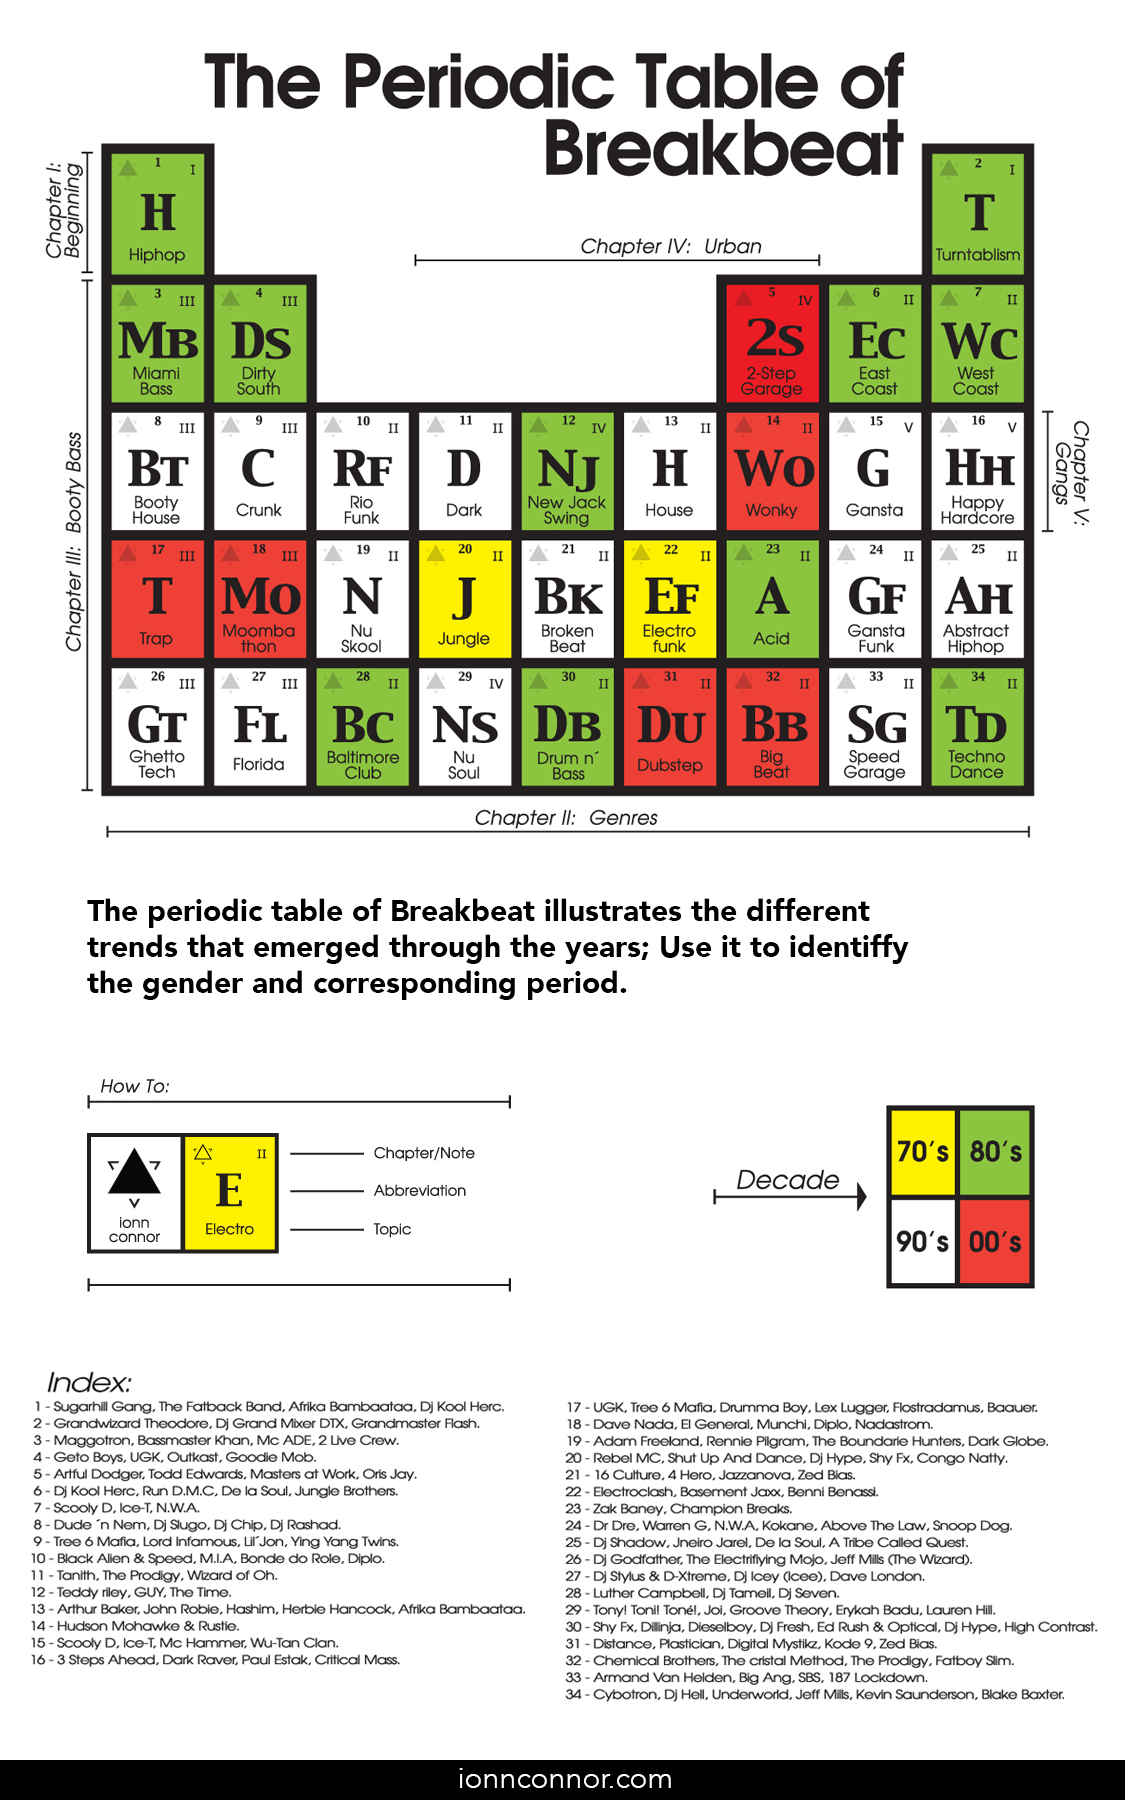 The periodic table of breakbeat ionnconnor urtaz Image collections